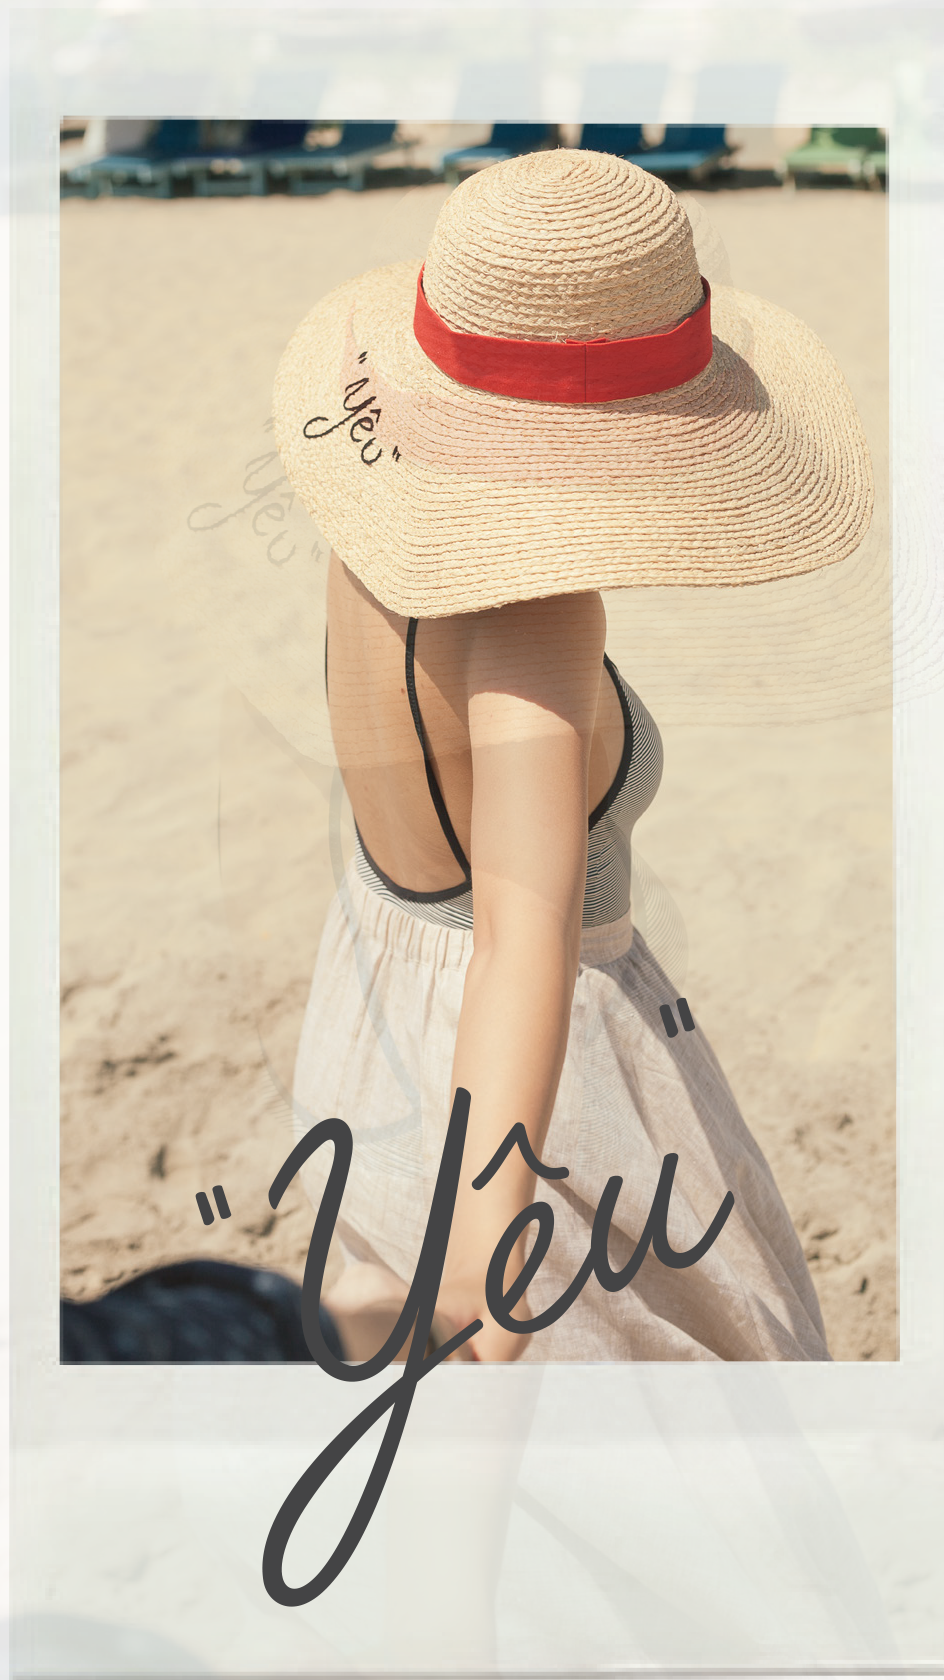 words_of_love_yeu_raffia_beach_hat_with_red_band_-_leinne